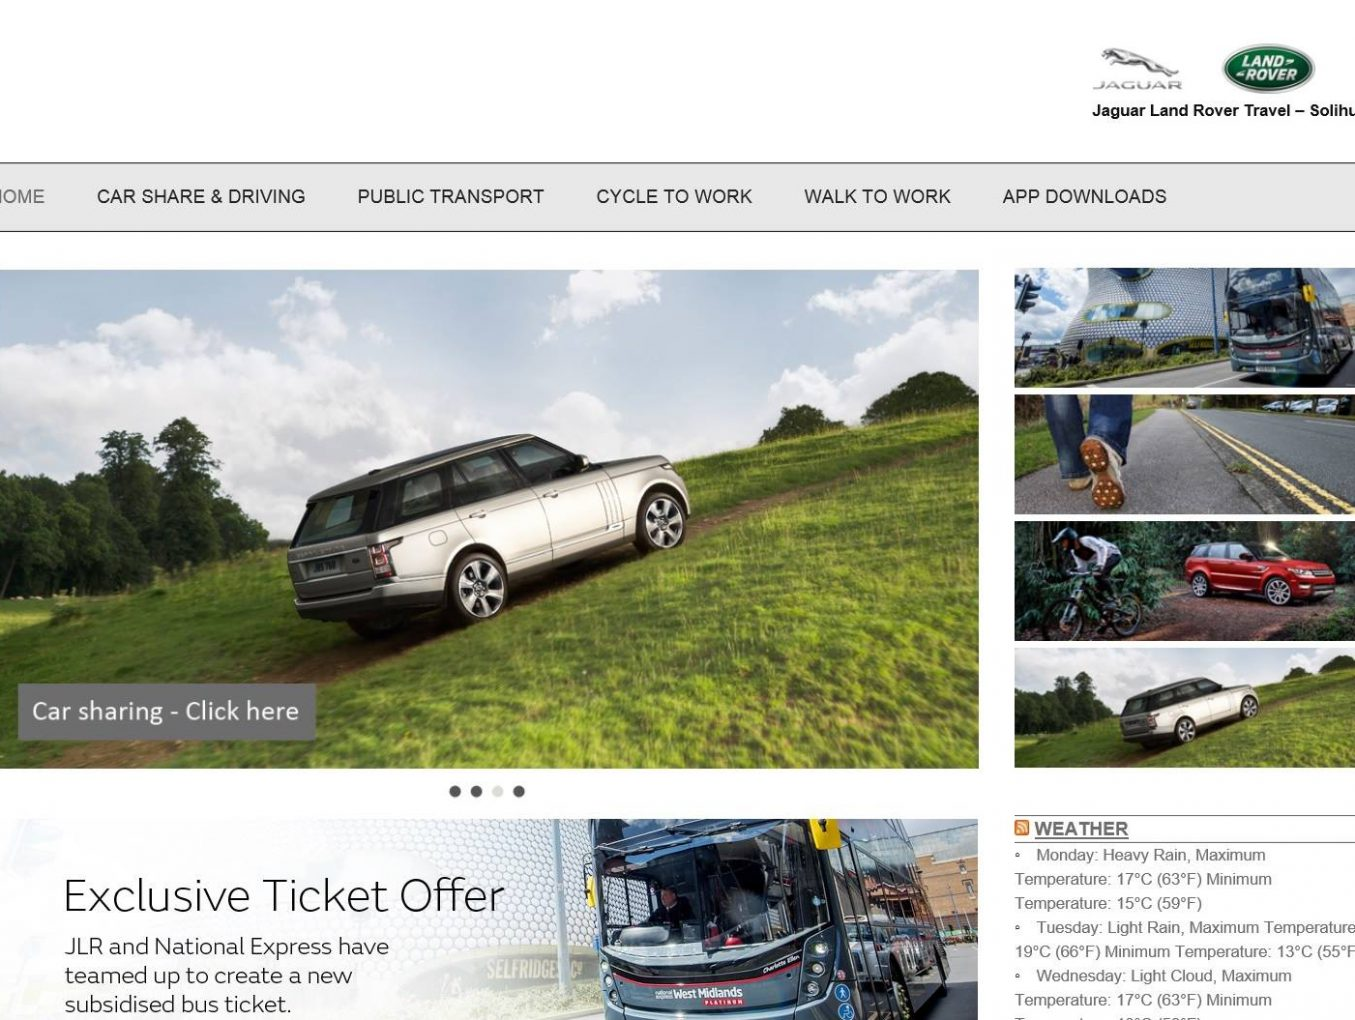 Jaguar Land Rover Travel